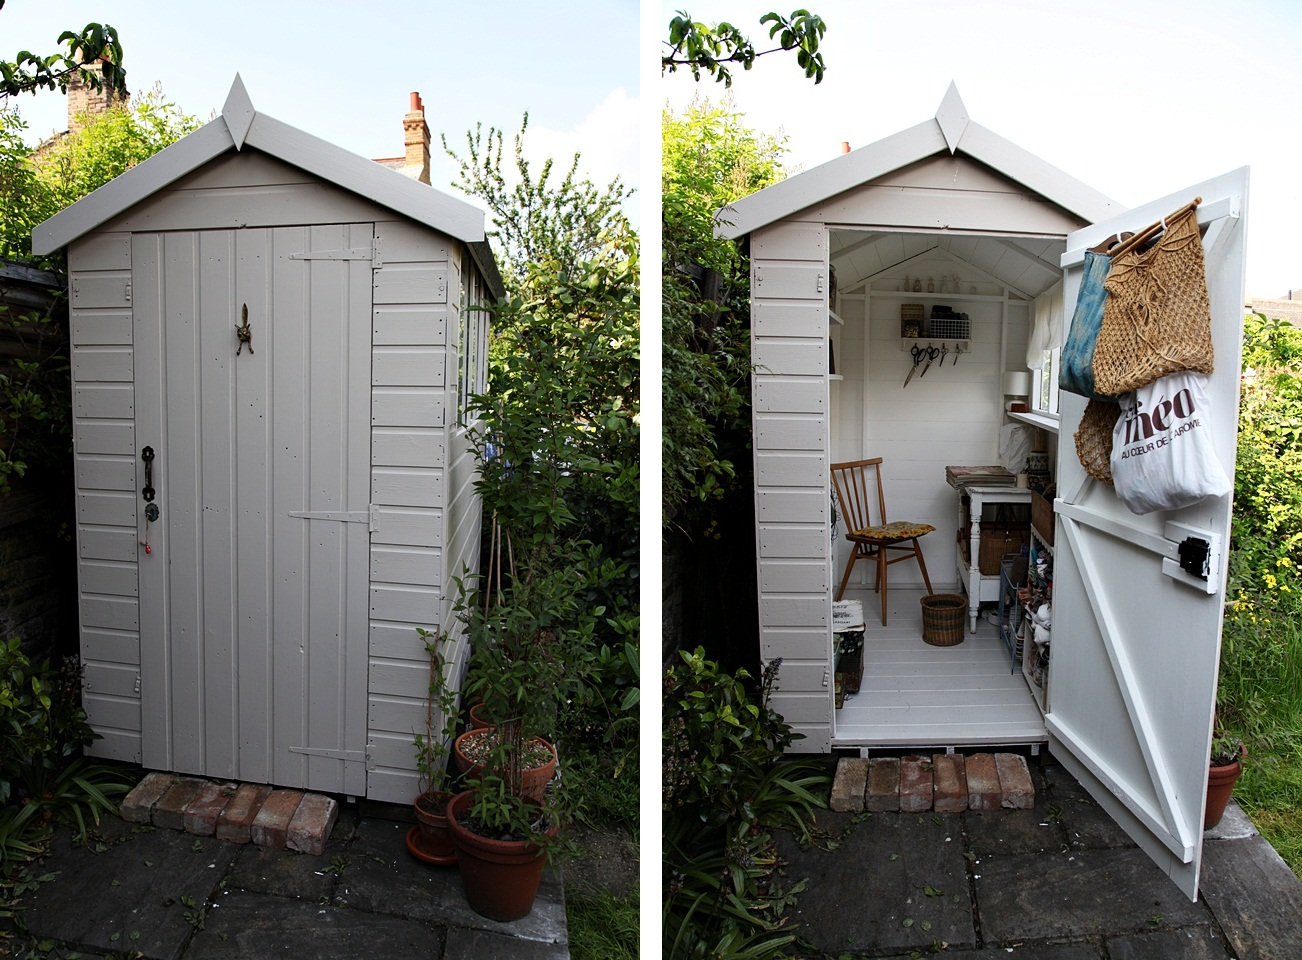 Husbondo Helped Me To Paint My Shed Its A Kind Of Putty Colour But White On The Inside As Before